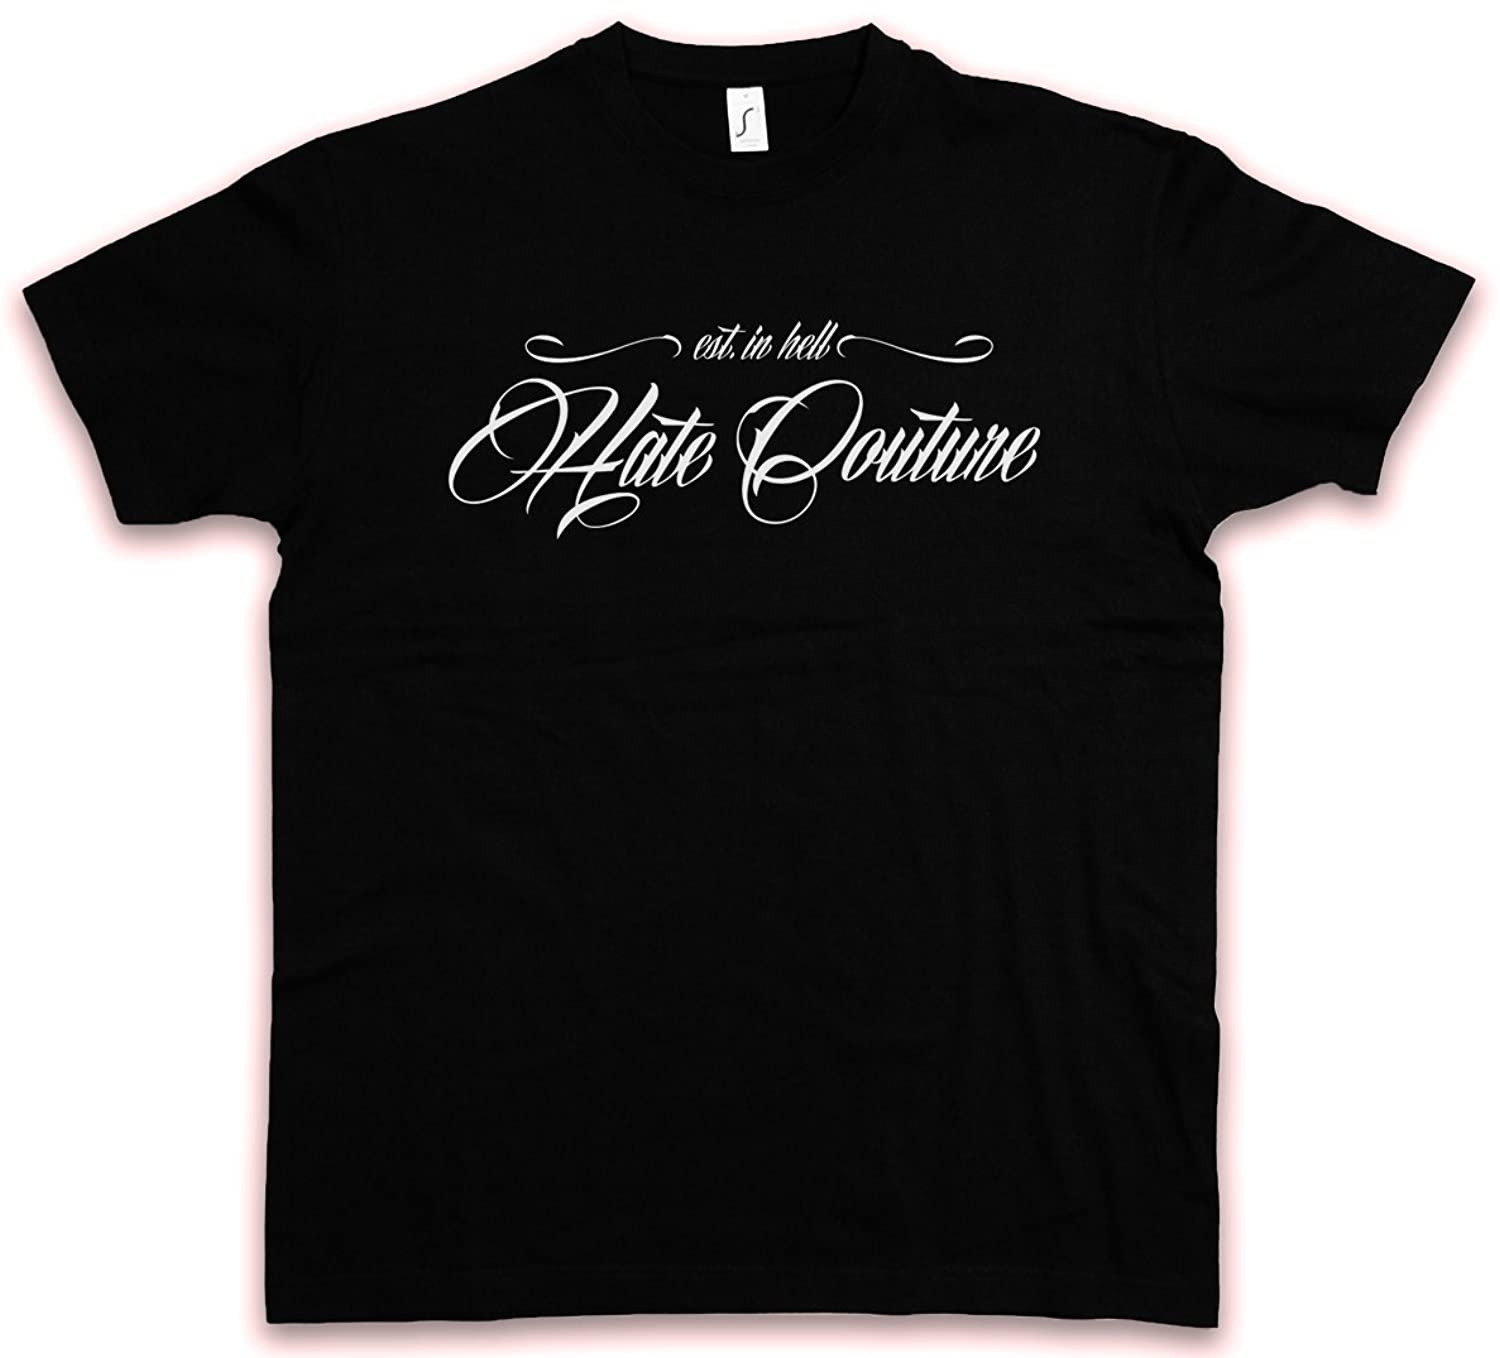 LATIN LETTERS 83 II HC HATE COUTURE T-SHIRT - Rockabilly Tattoo Resistance Rebel Redneck Rap Indie Shirt Sizes S - 5XL